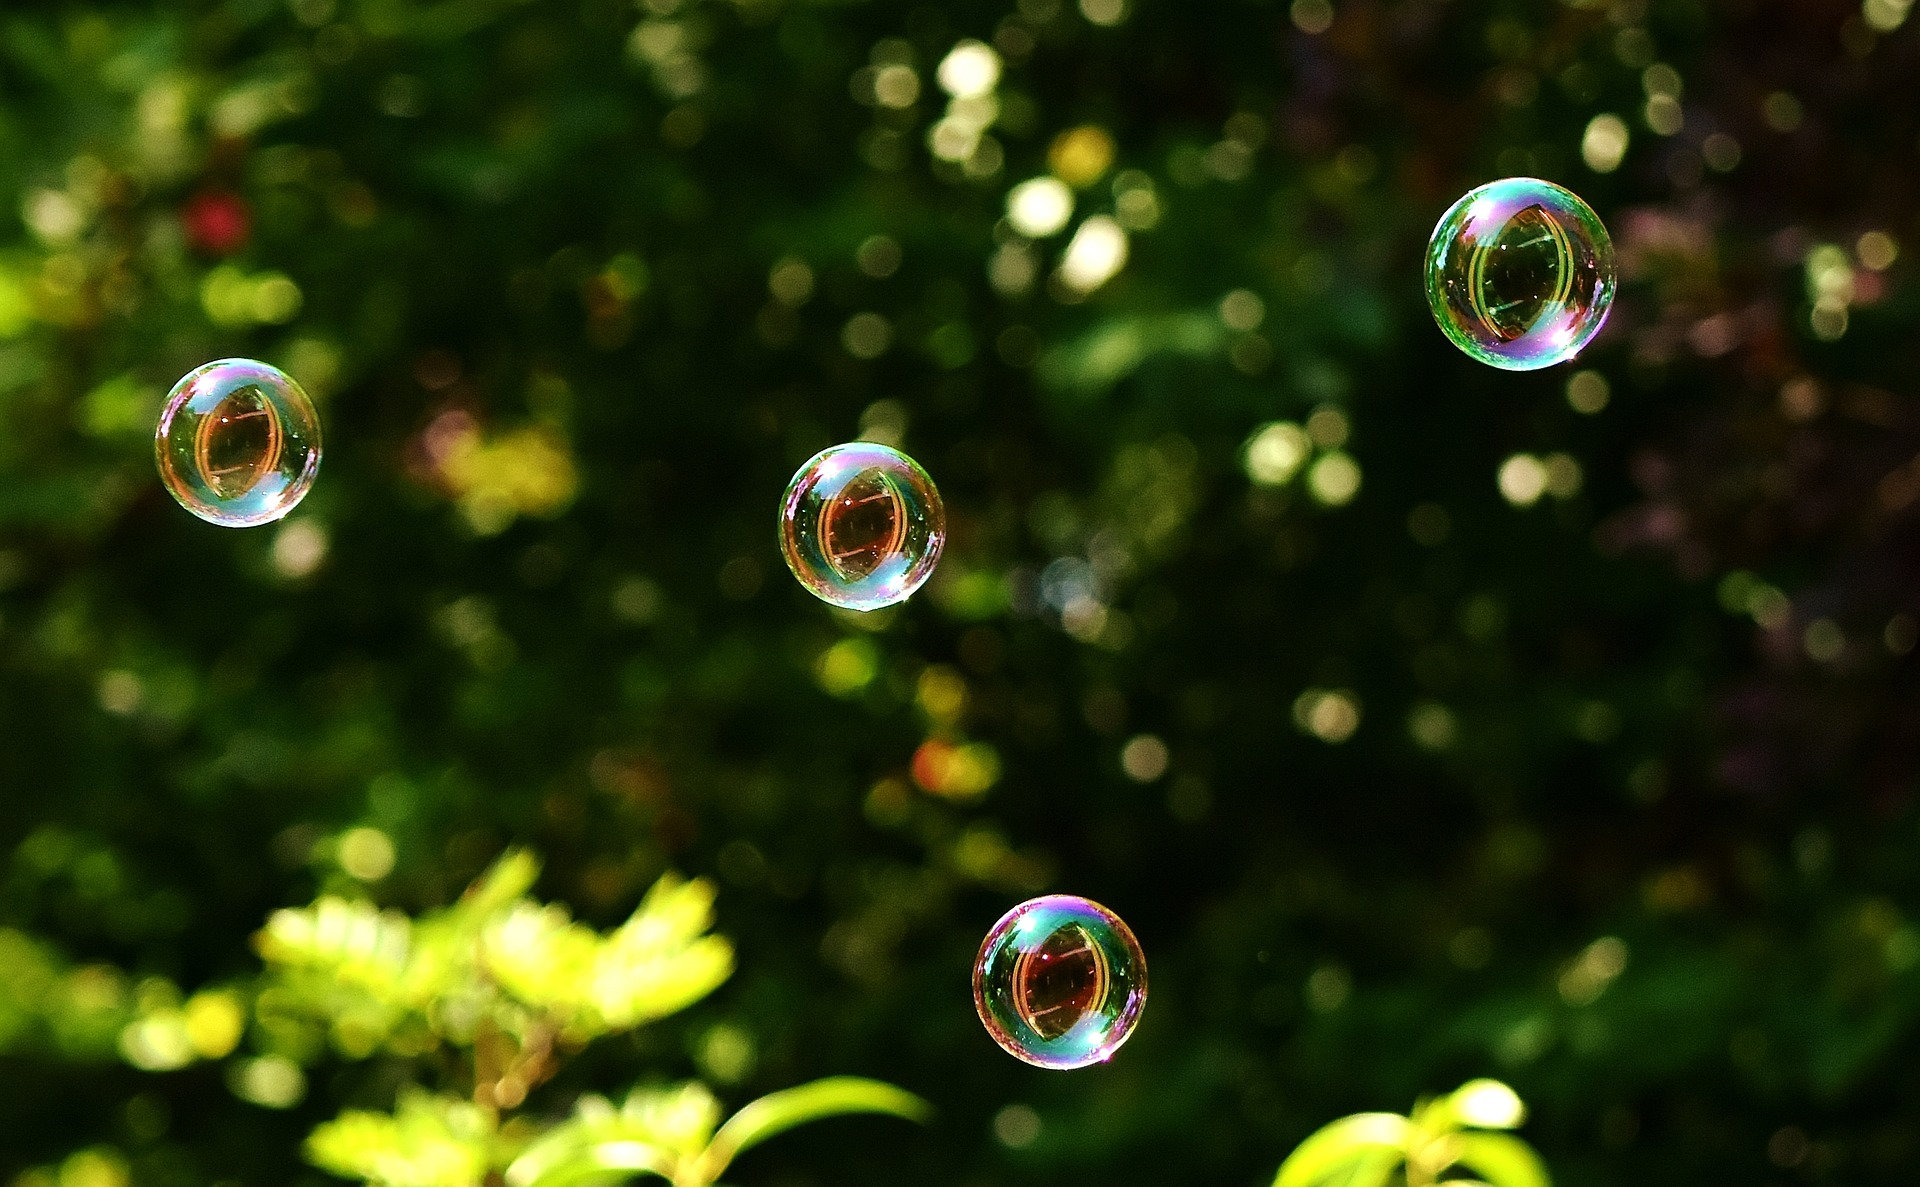 soap-bubbles-2436210_1920.jpg